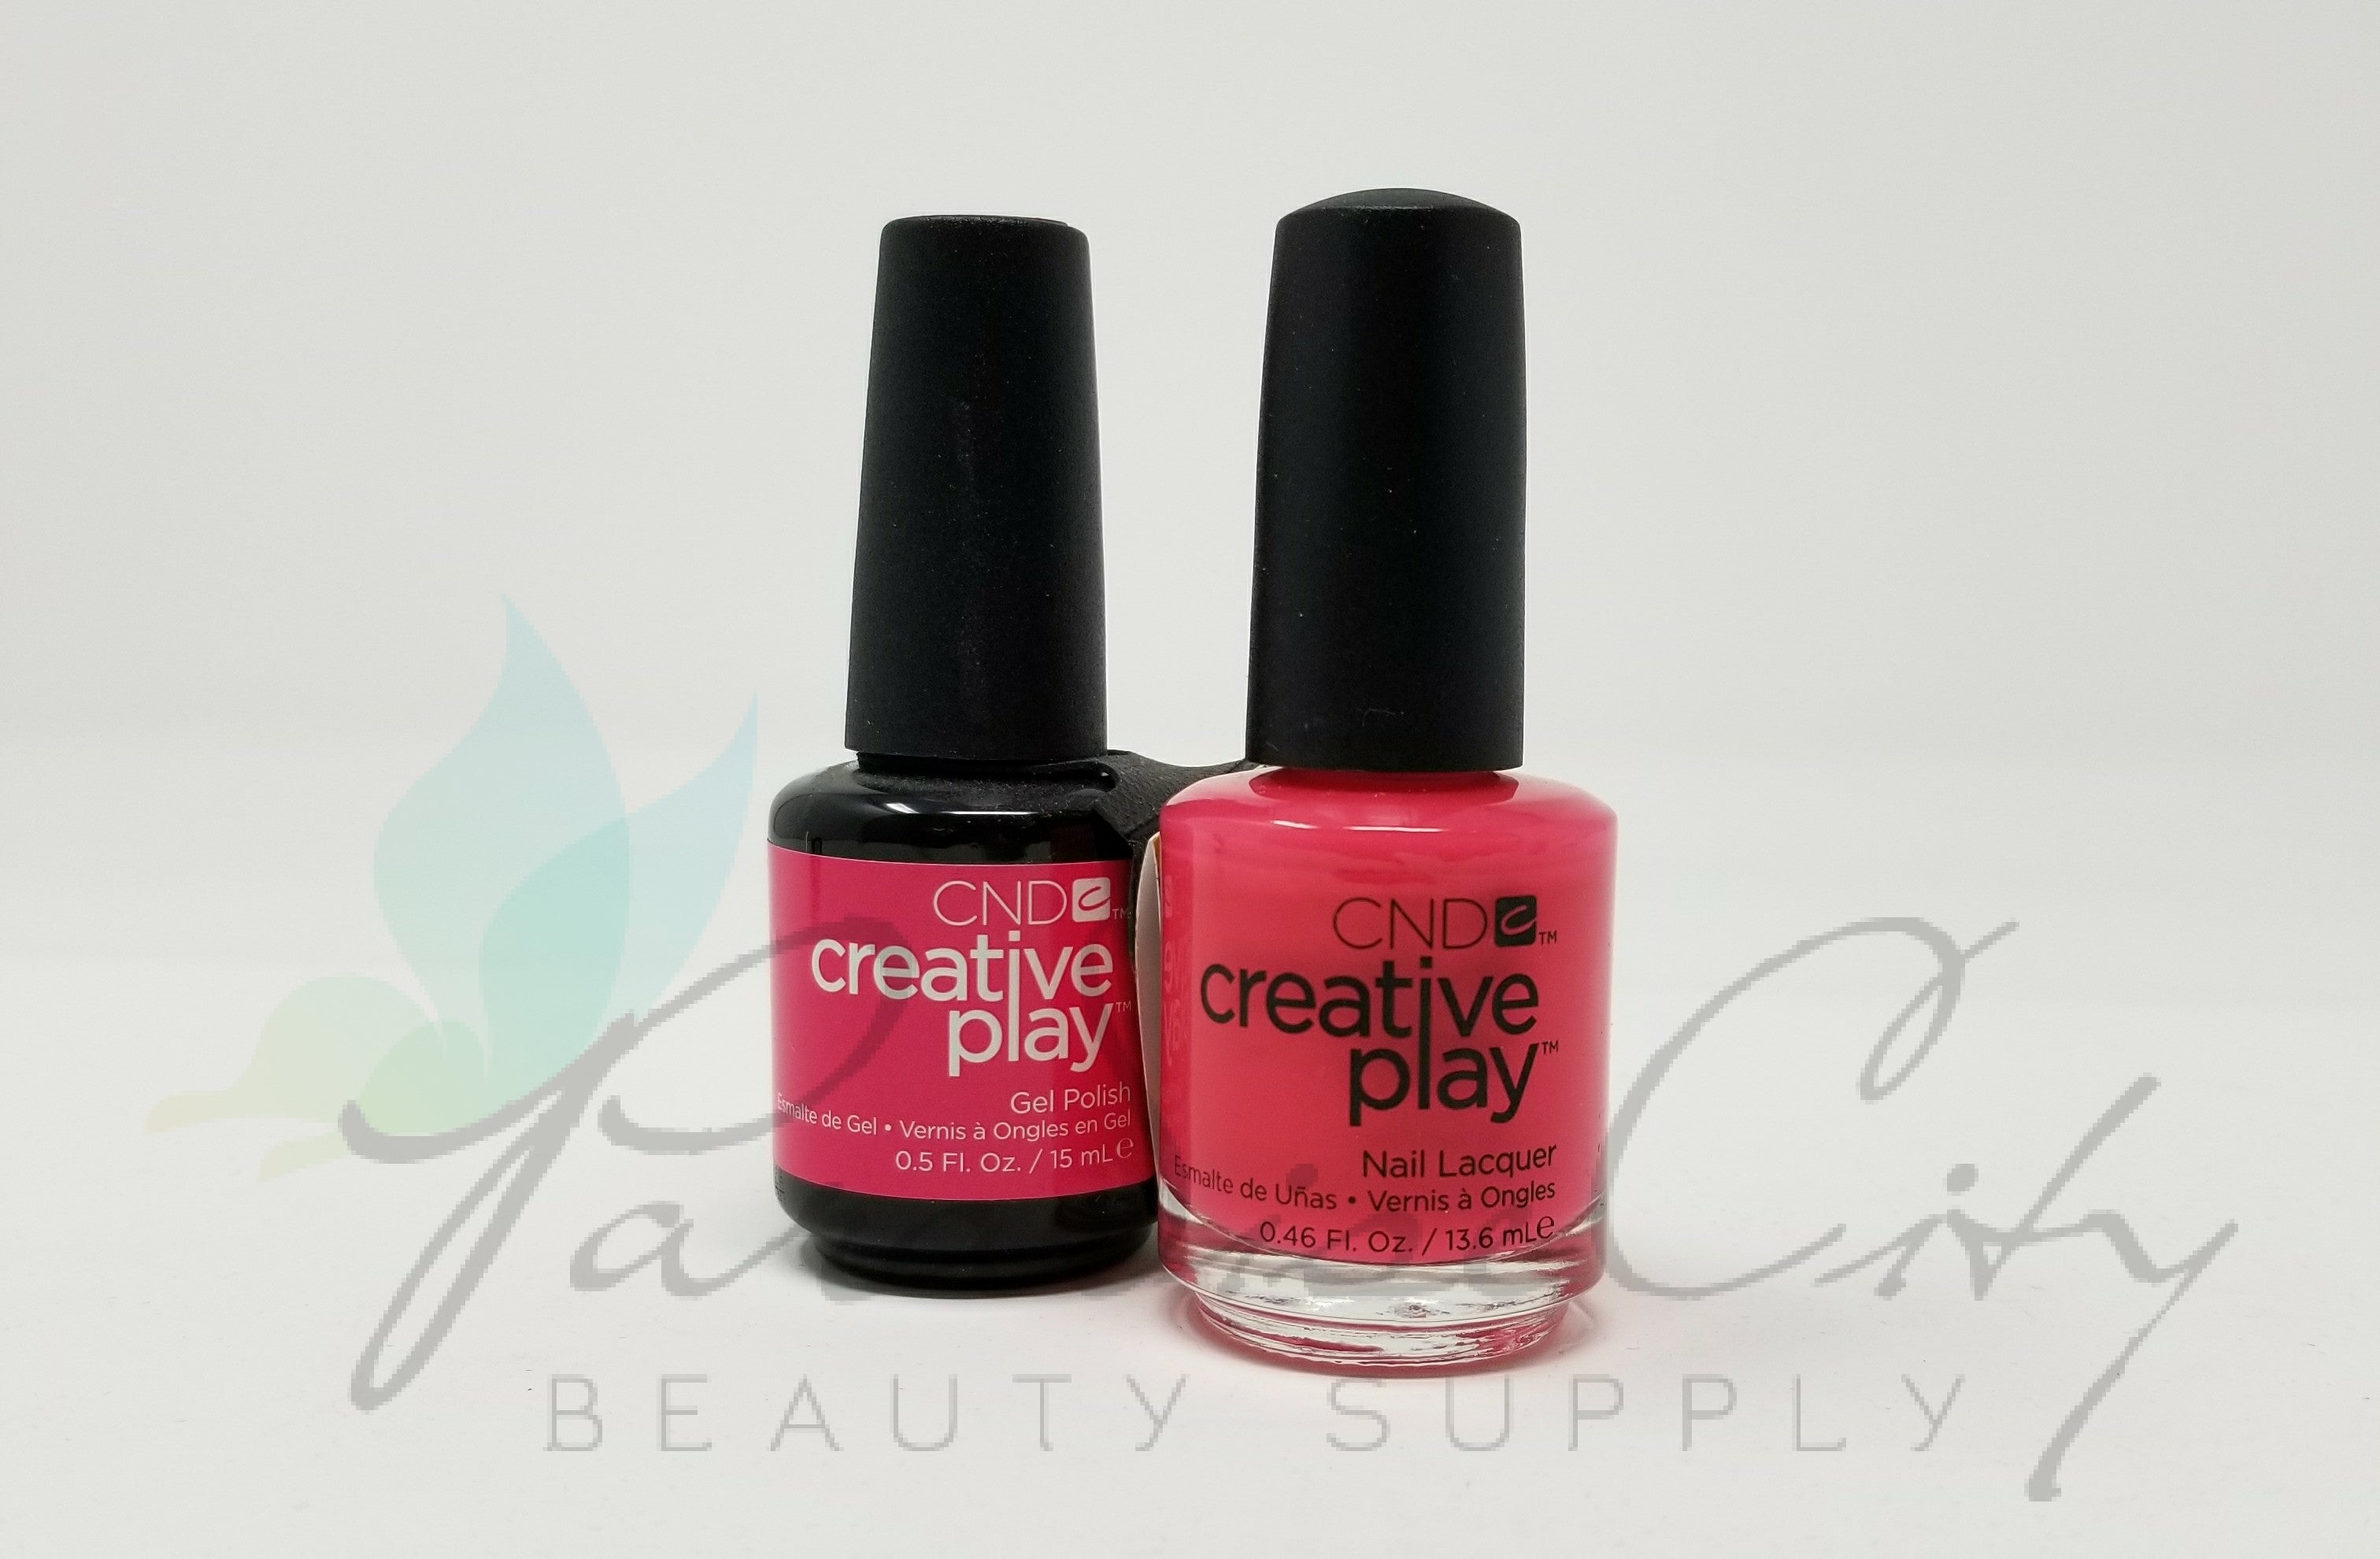 CND Creative Play Matching Gel Polish & Nail Lacquer - #474 Peony ...